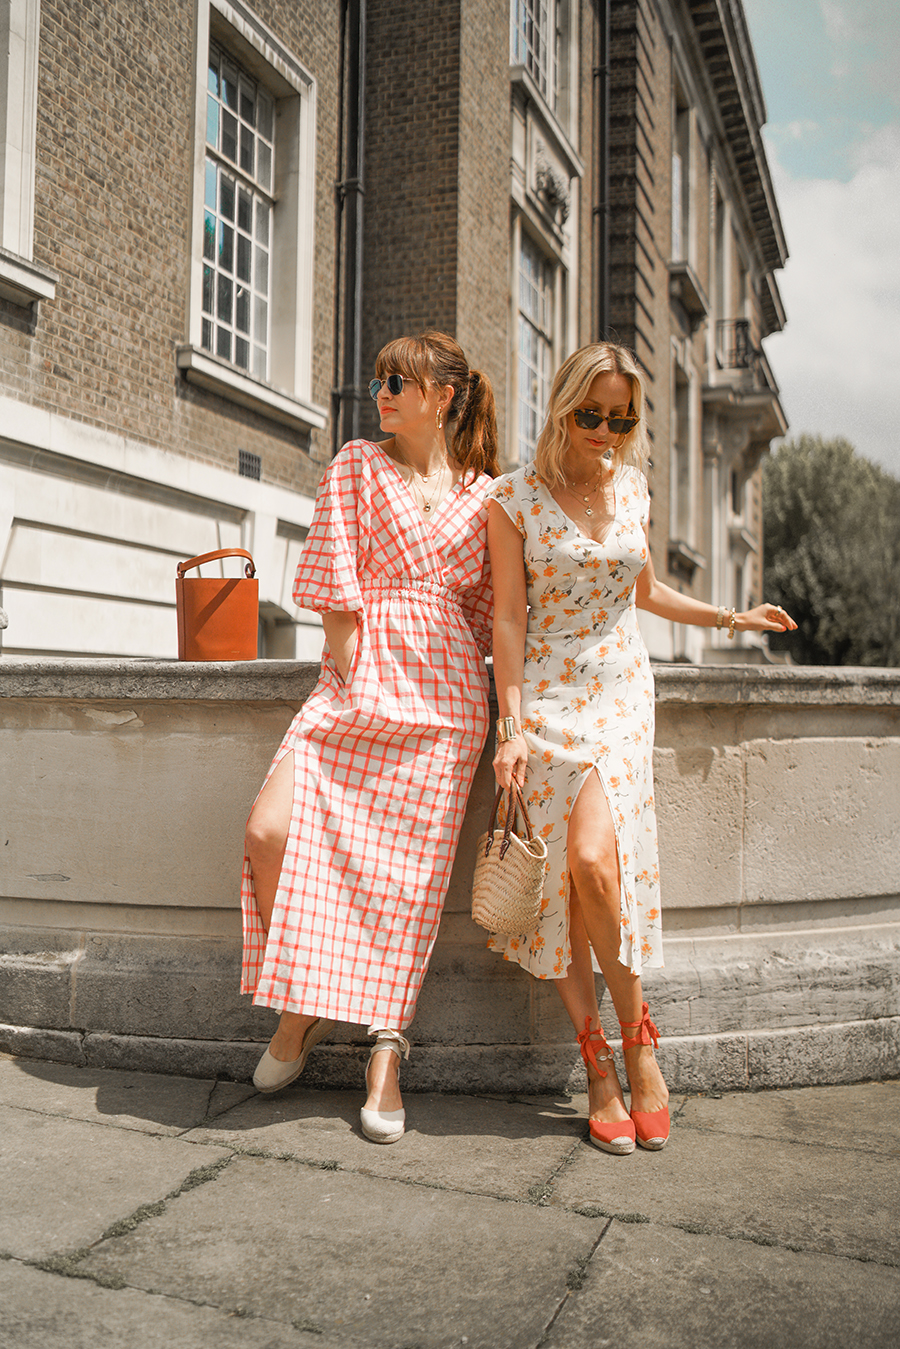 9cc8389031 belle and bunty for farfetch positively concious reformation dress mara  hoffman london bloggers influencers